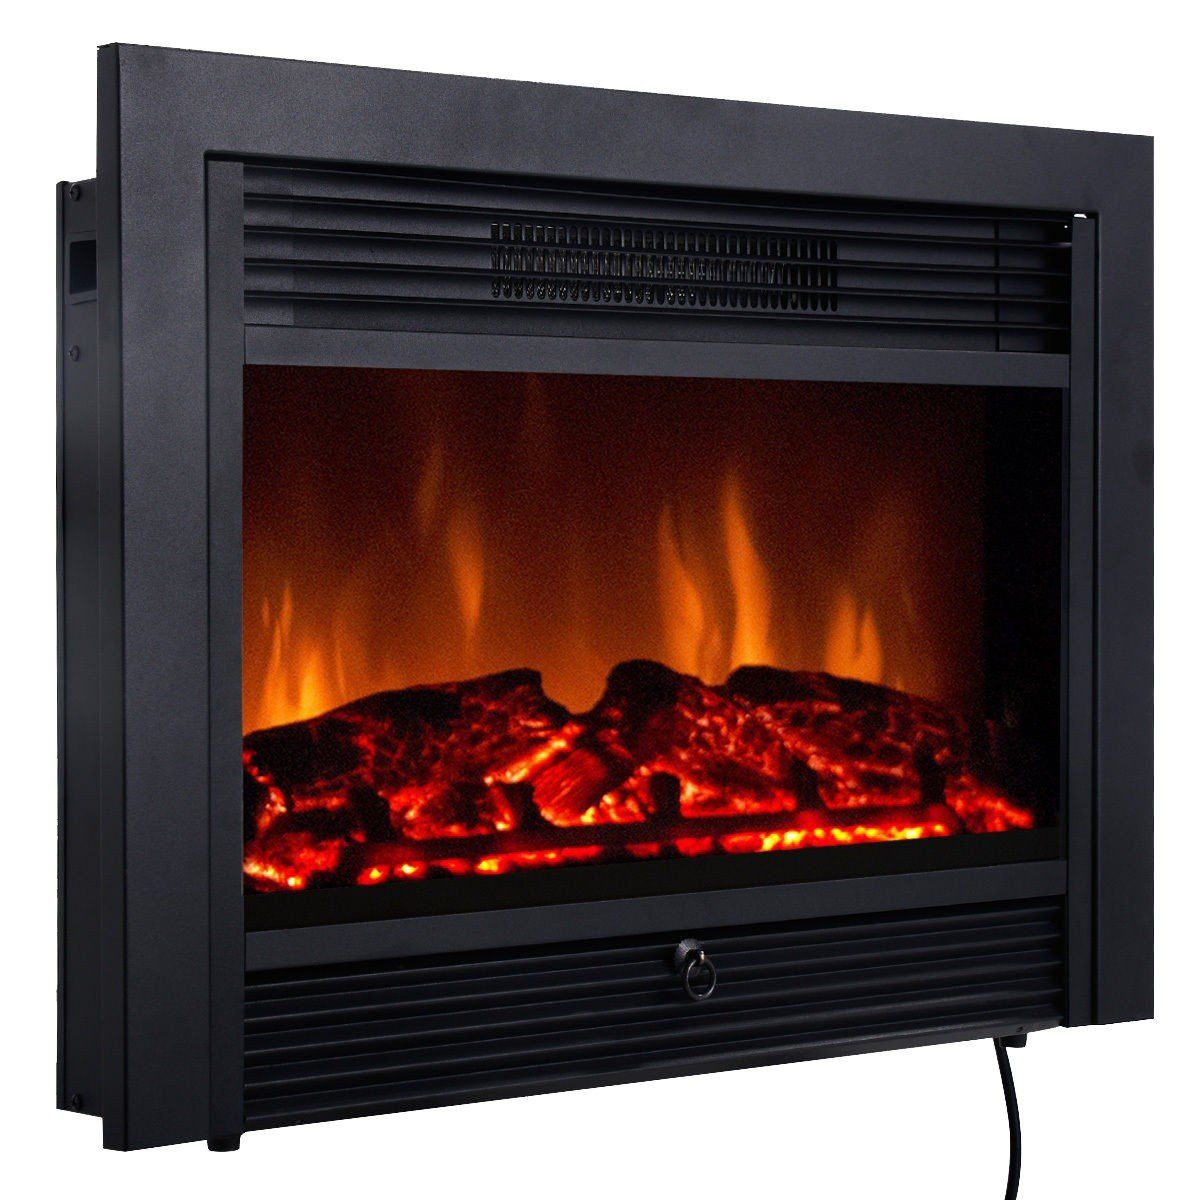 28 5 electric embedded insert heater fireplace rh pinterest com